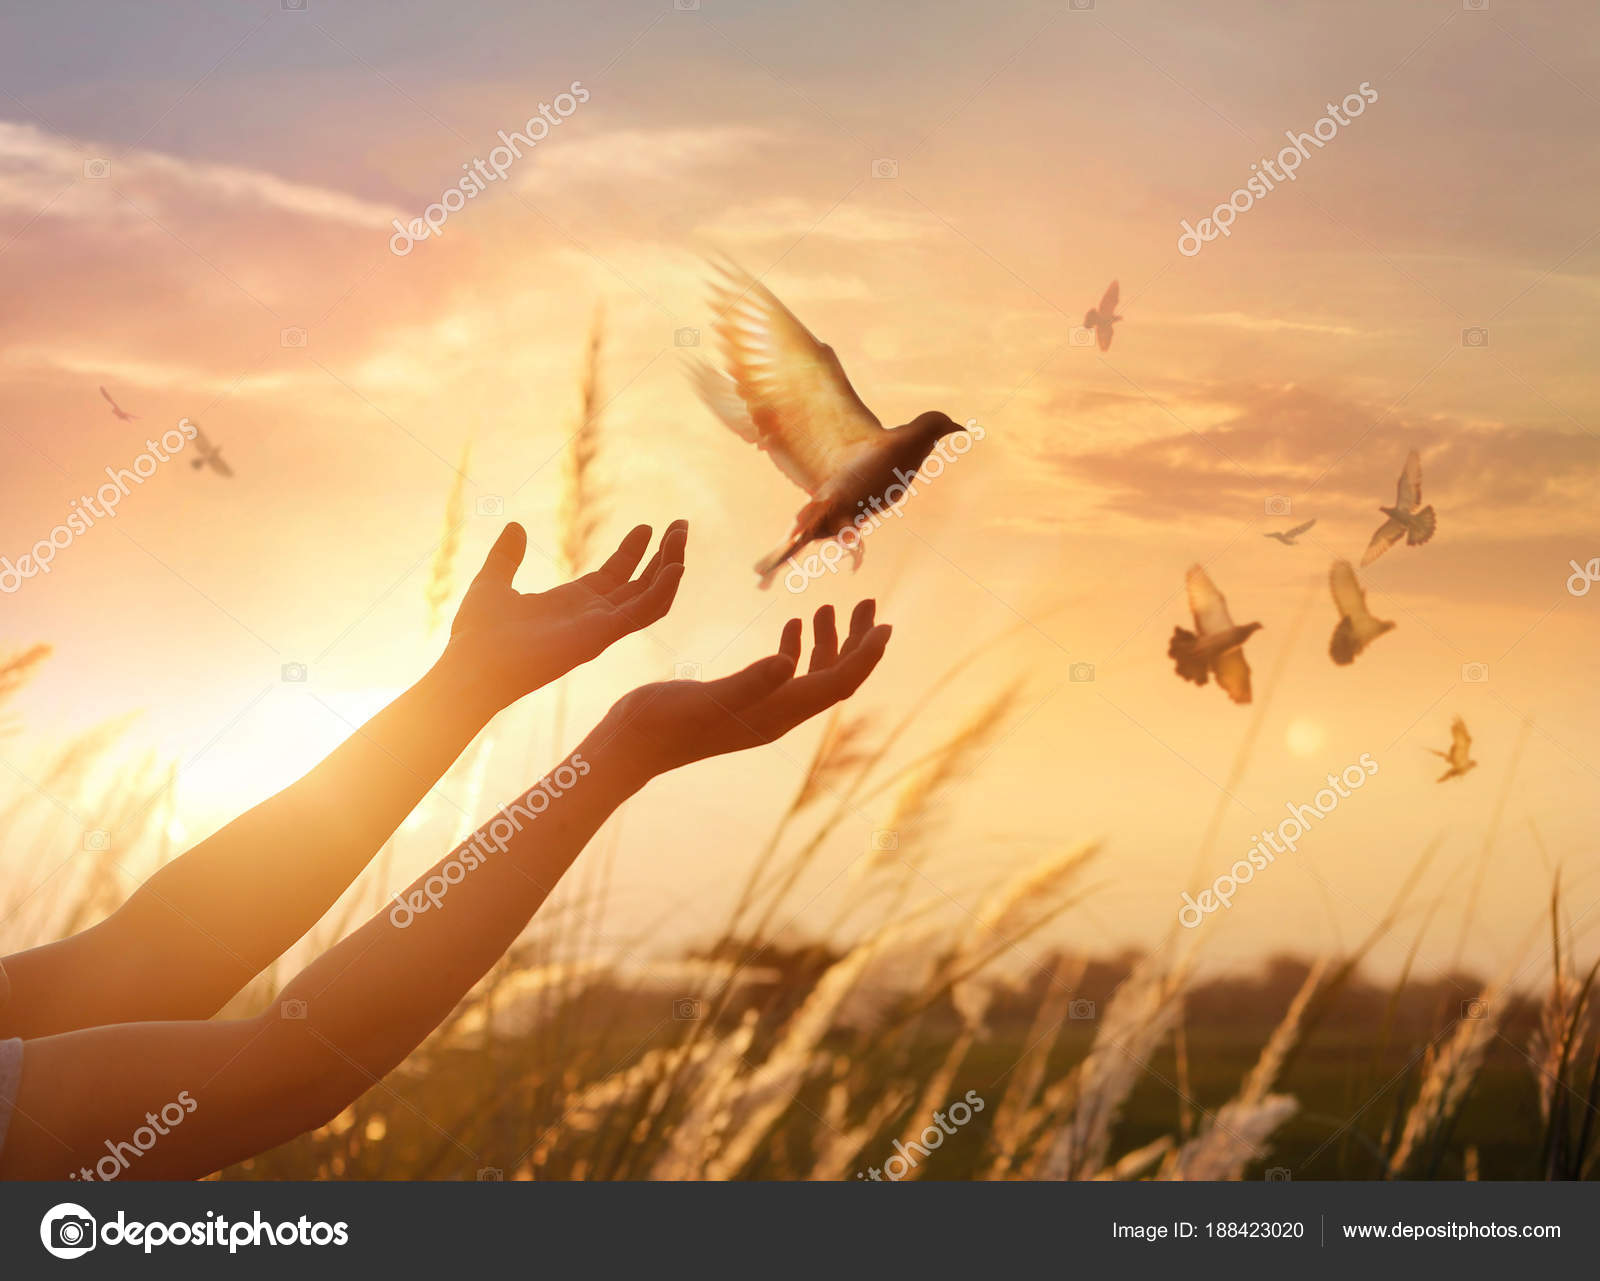 Woman Praying And Free The Birds Enjoying Nature On Sunset